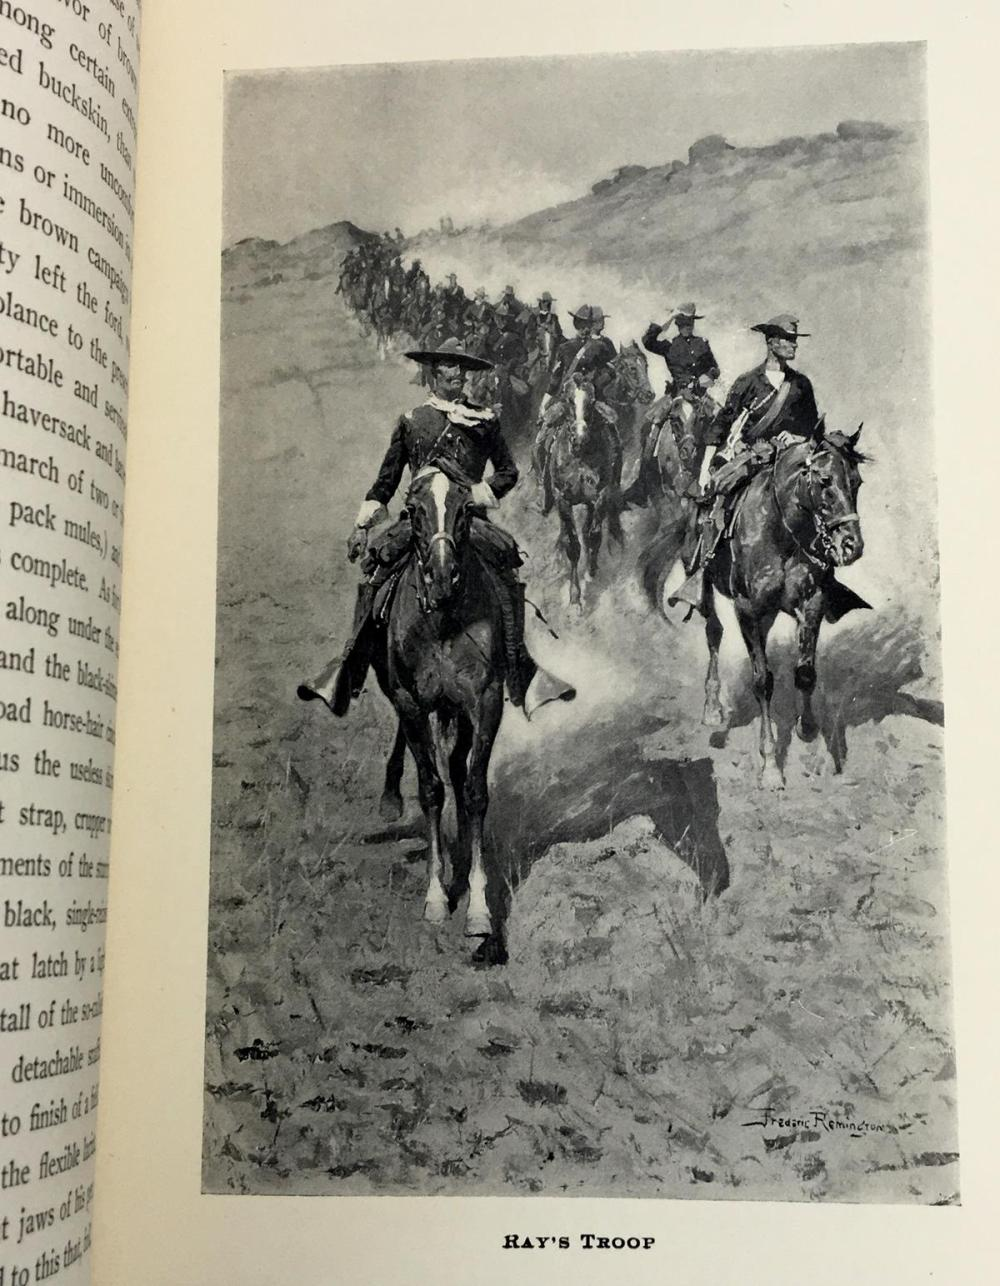 1903 A Daughter of The Sioux: A Tale of The Indian Frontier by Gen. Charles King Illustrated by Frederic Remington